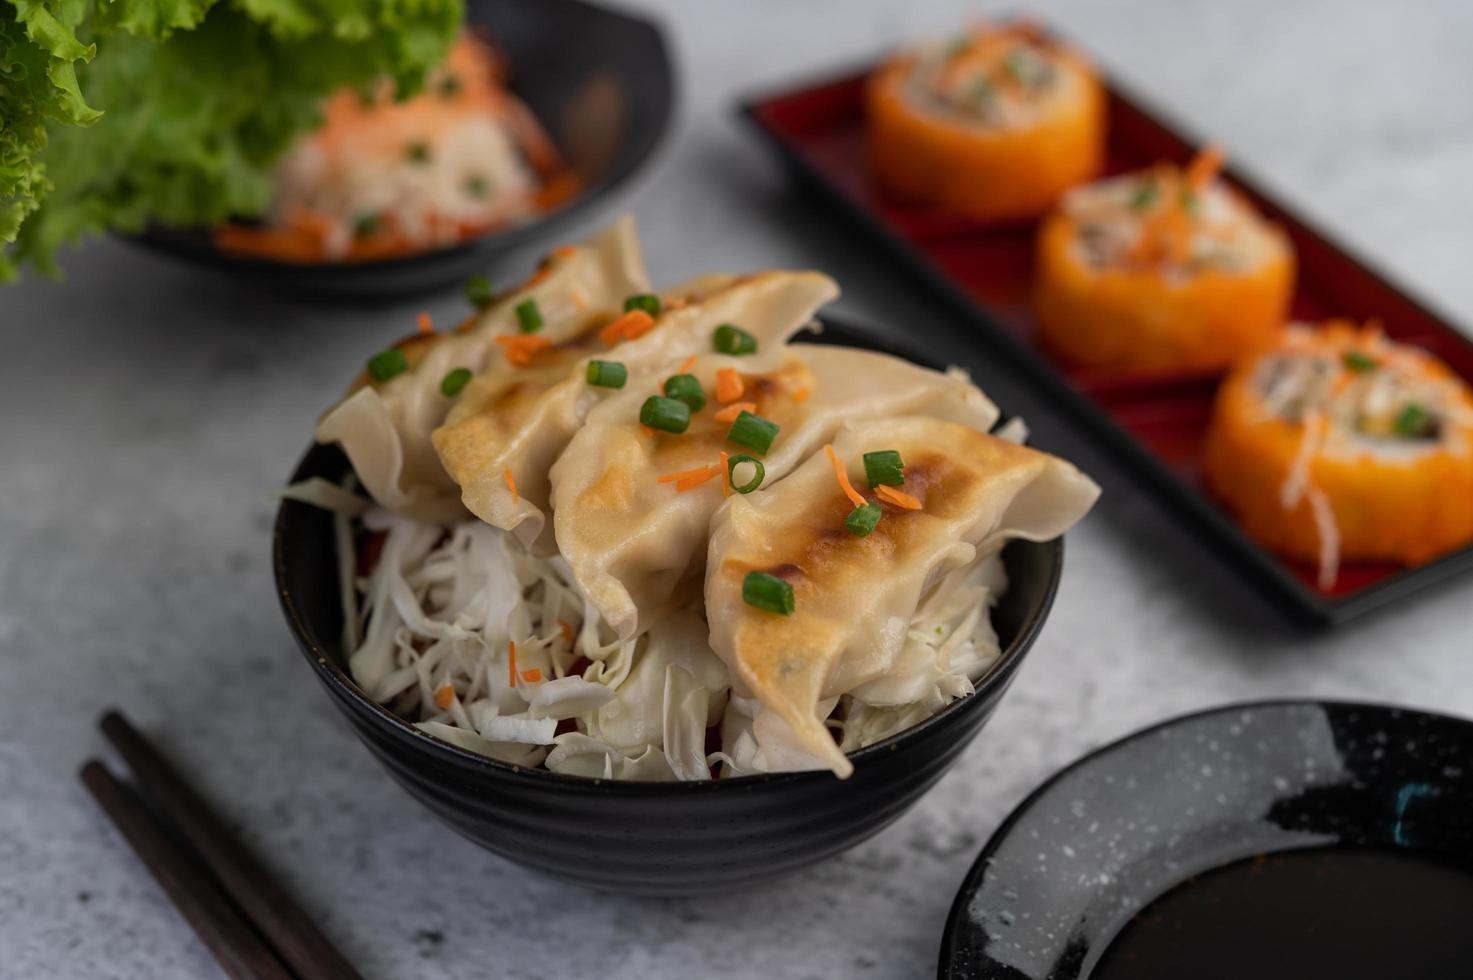 Gyoza in a black cup with sauce photo